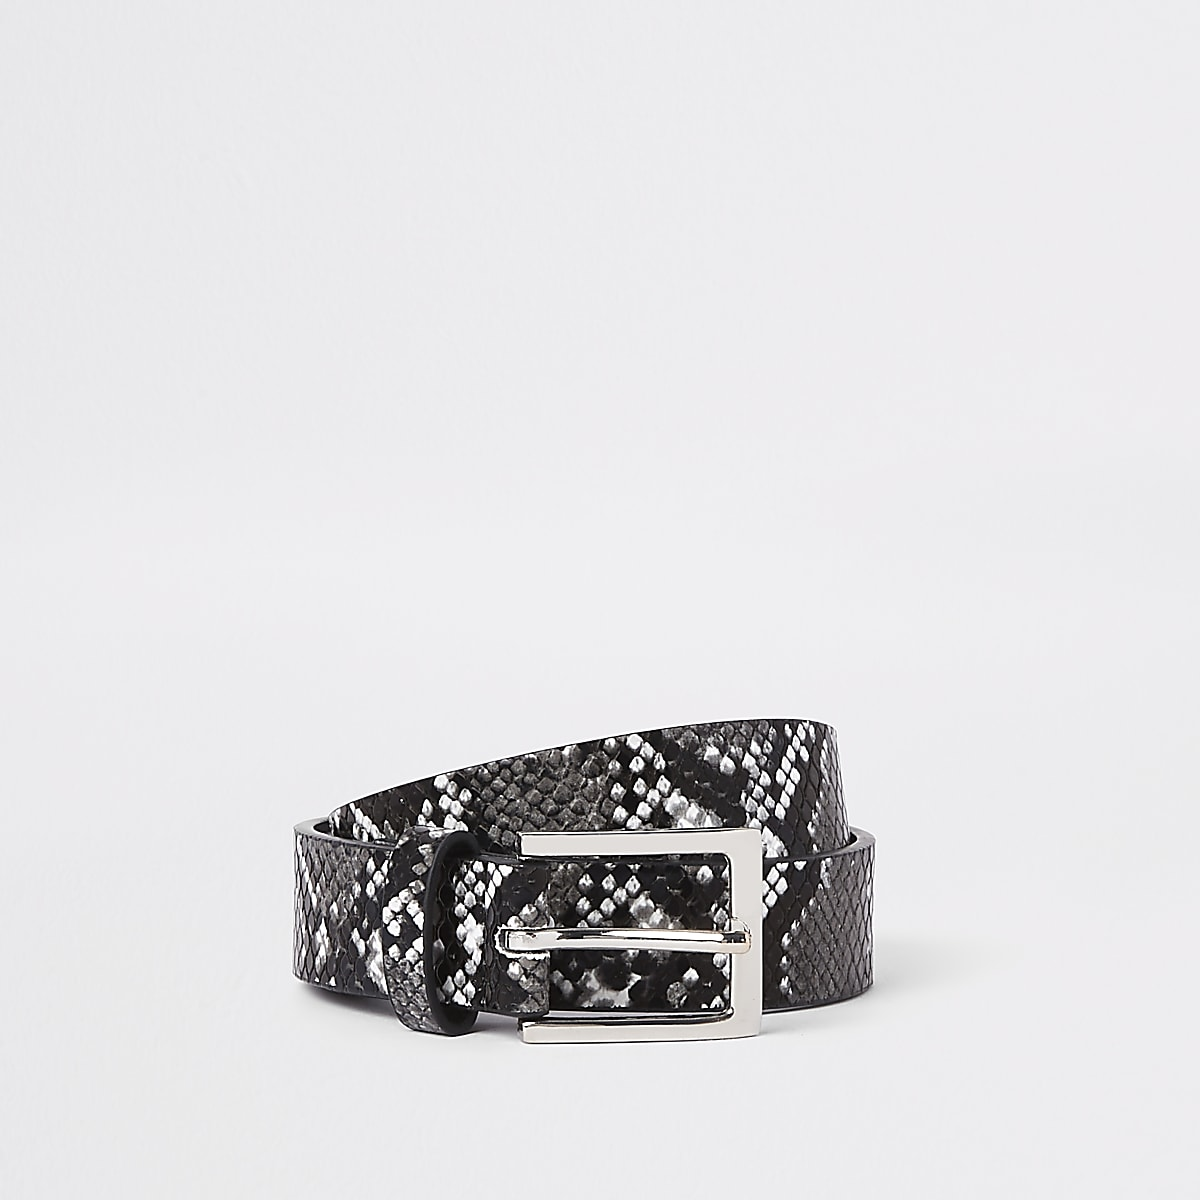 Black and white snake print belt